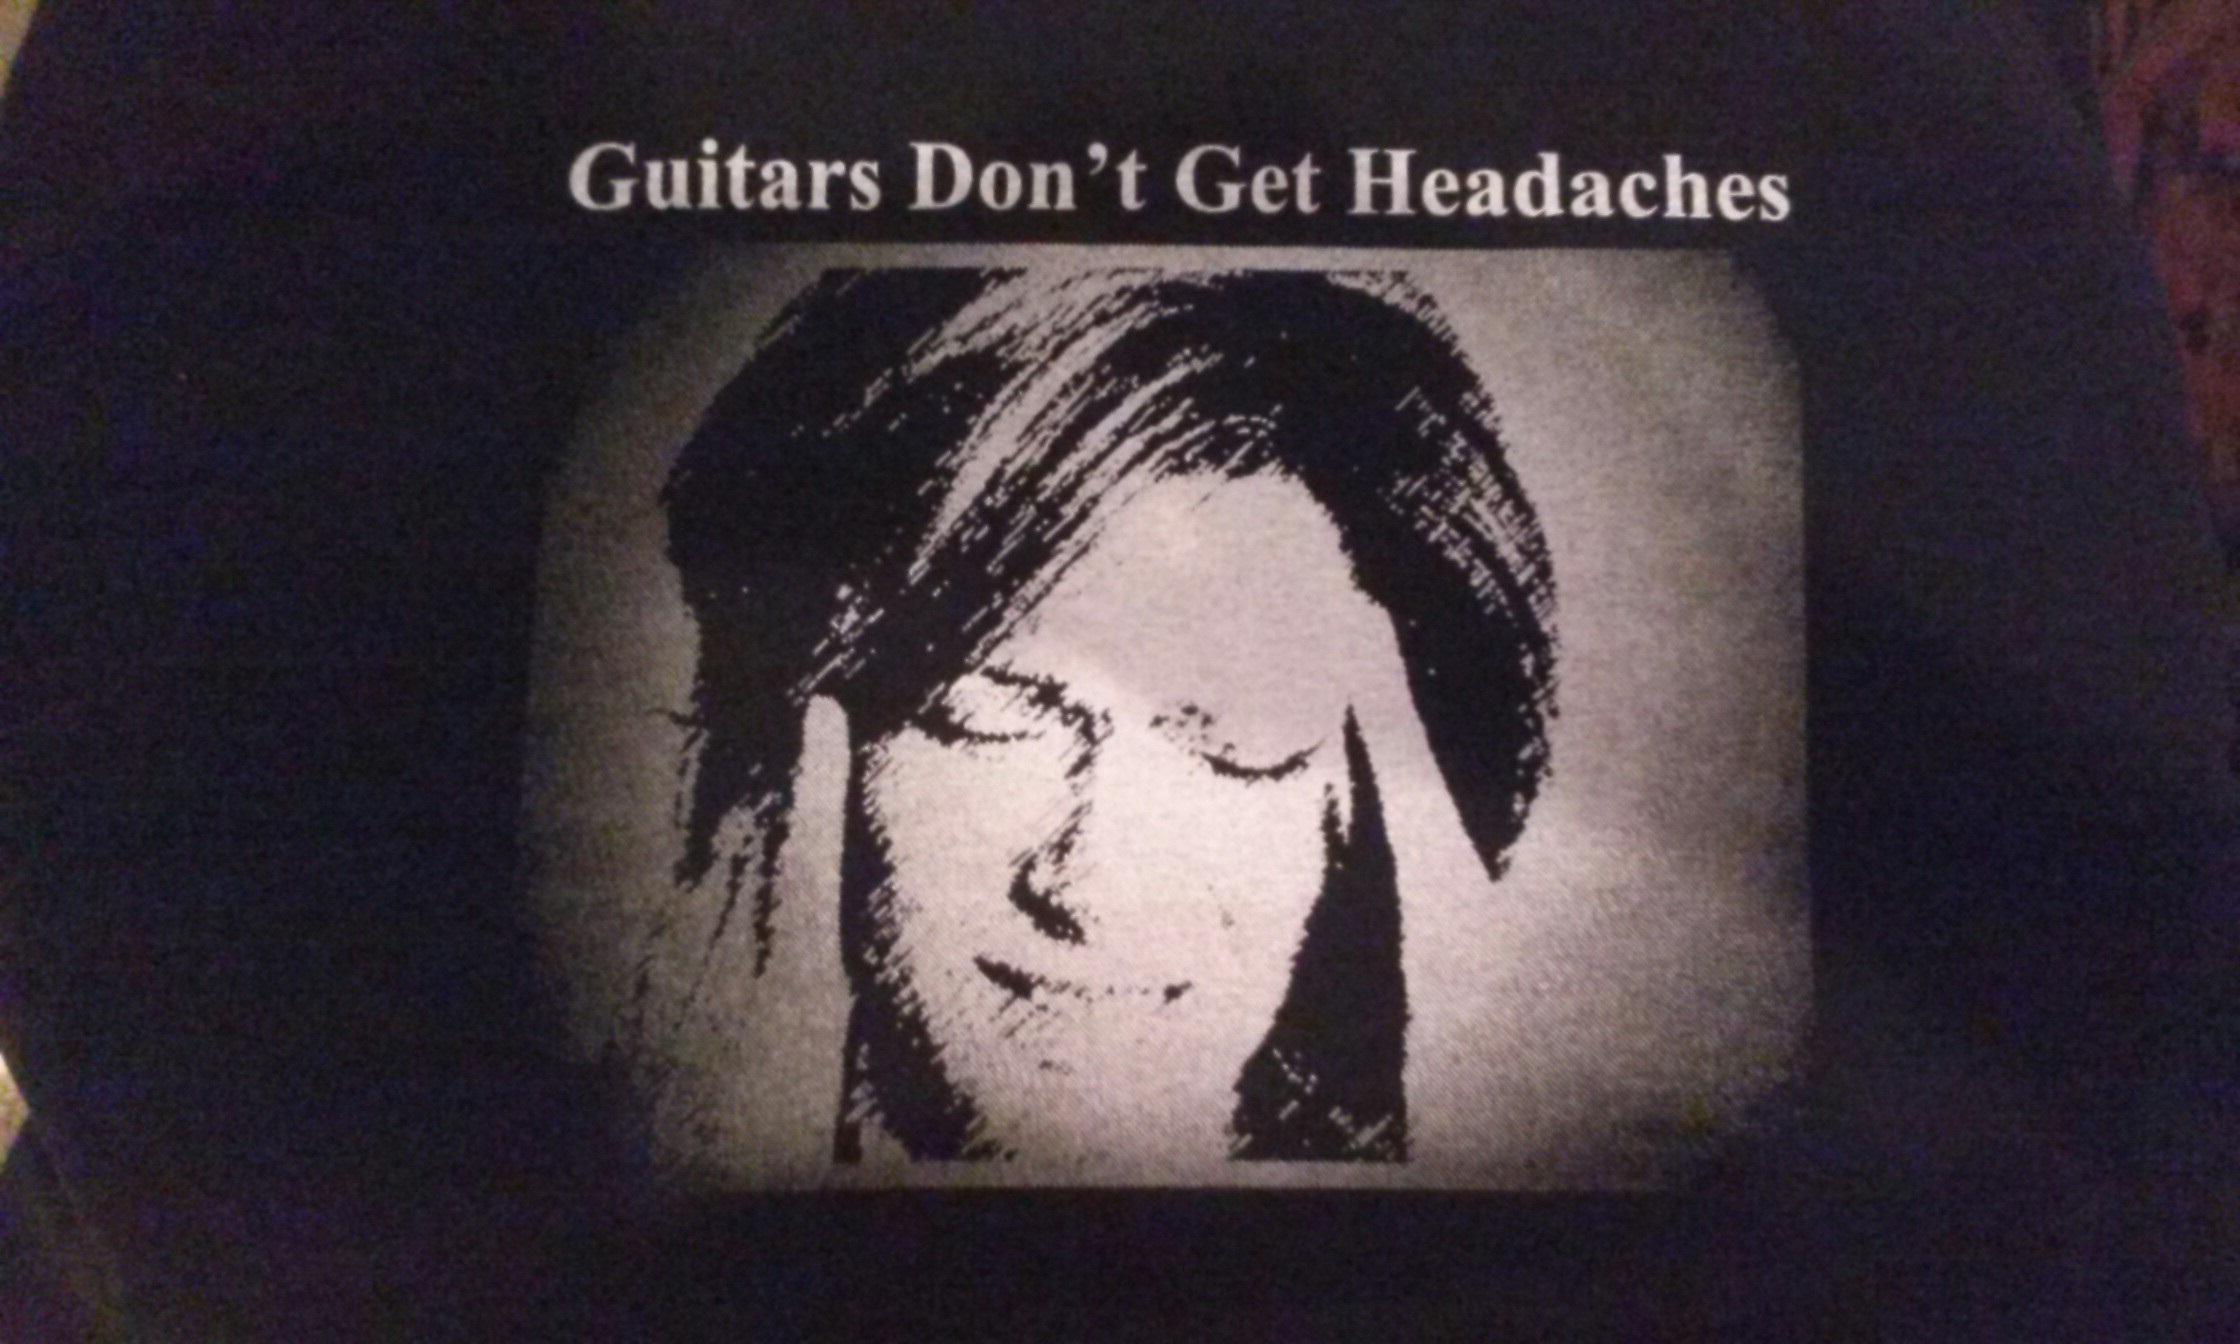 Guitars Don't Get Headaches